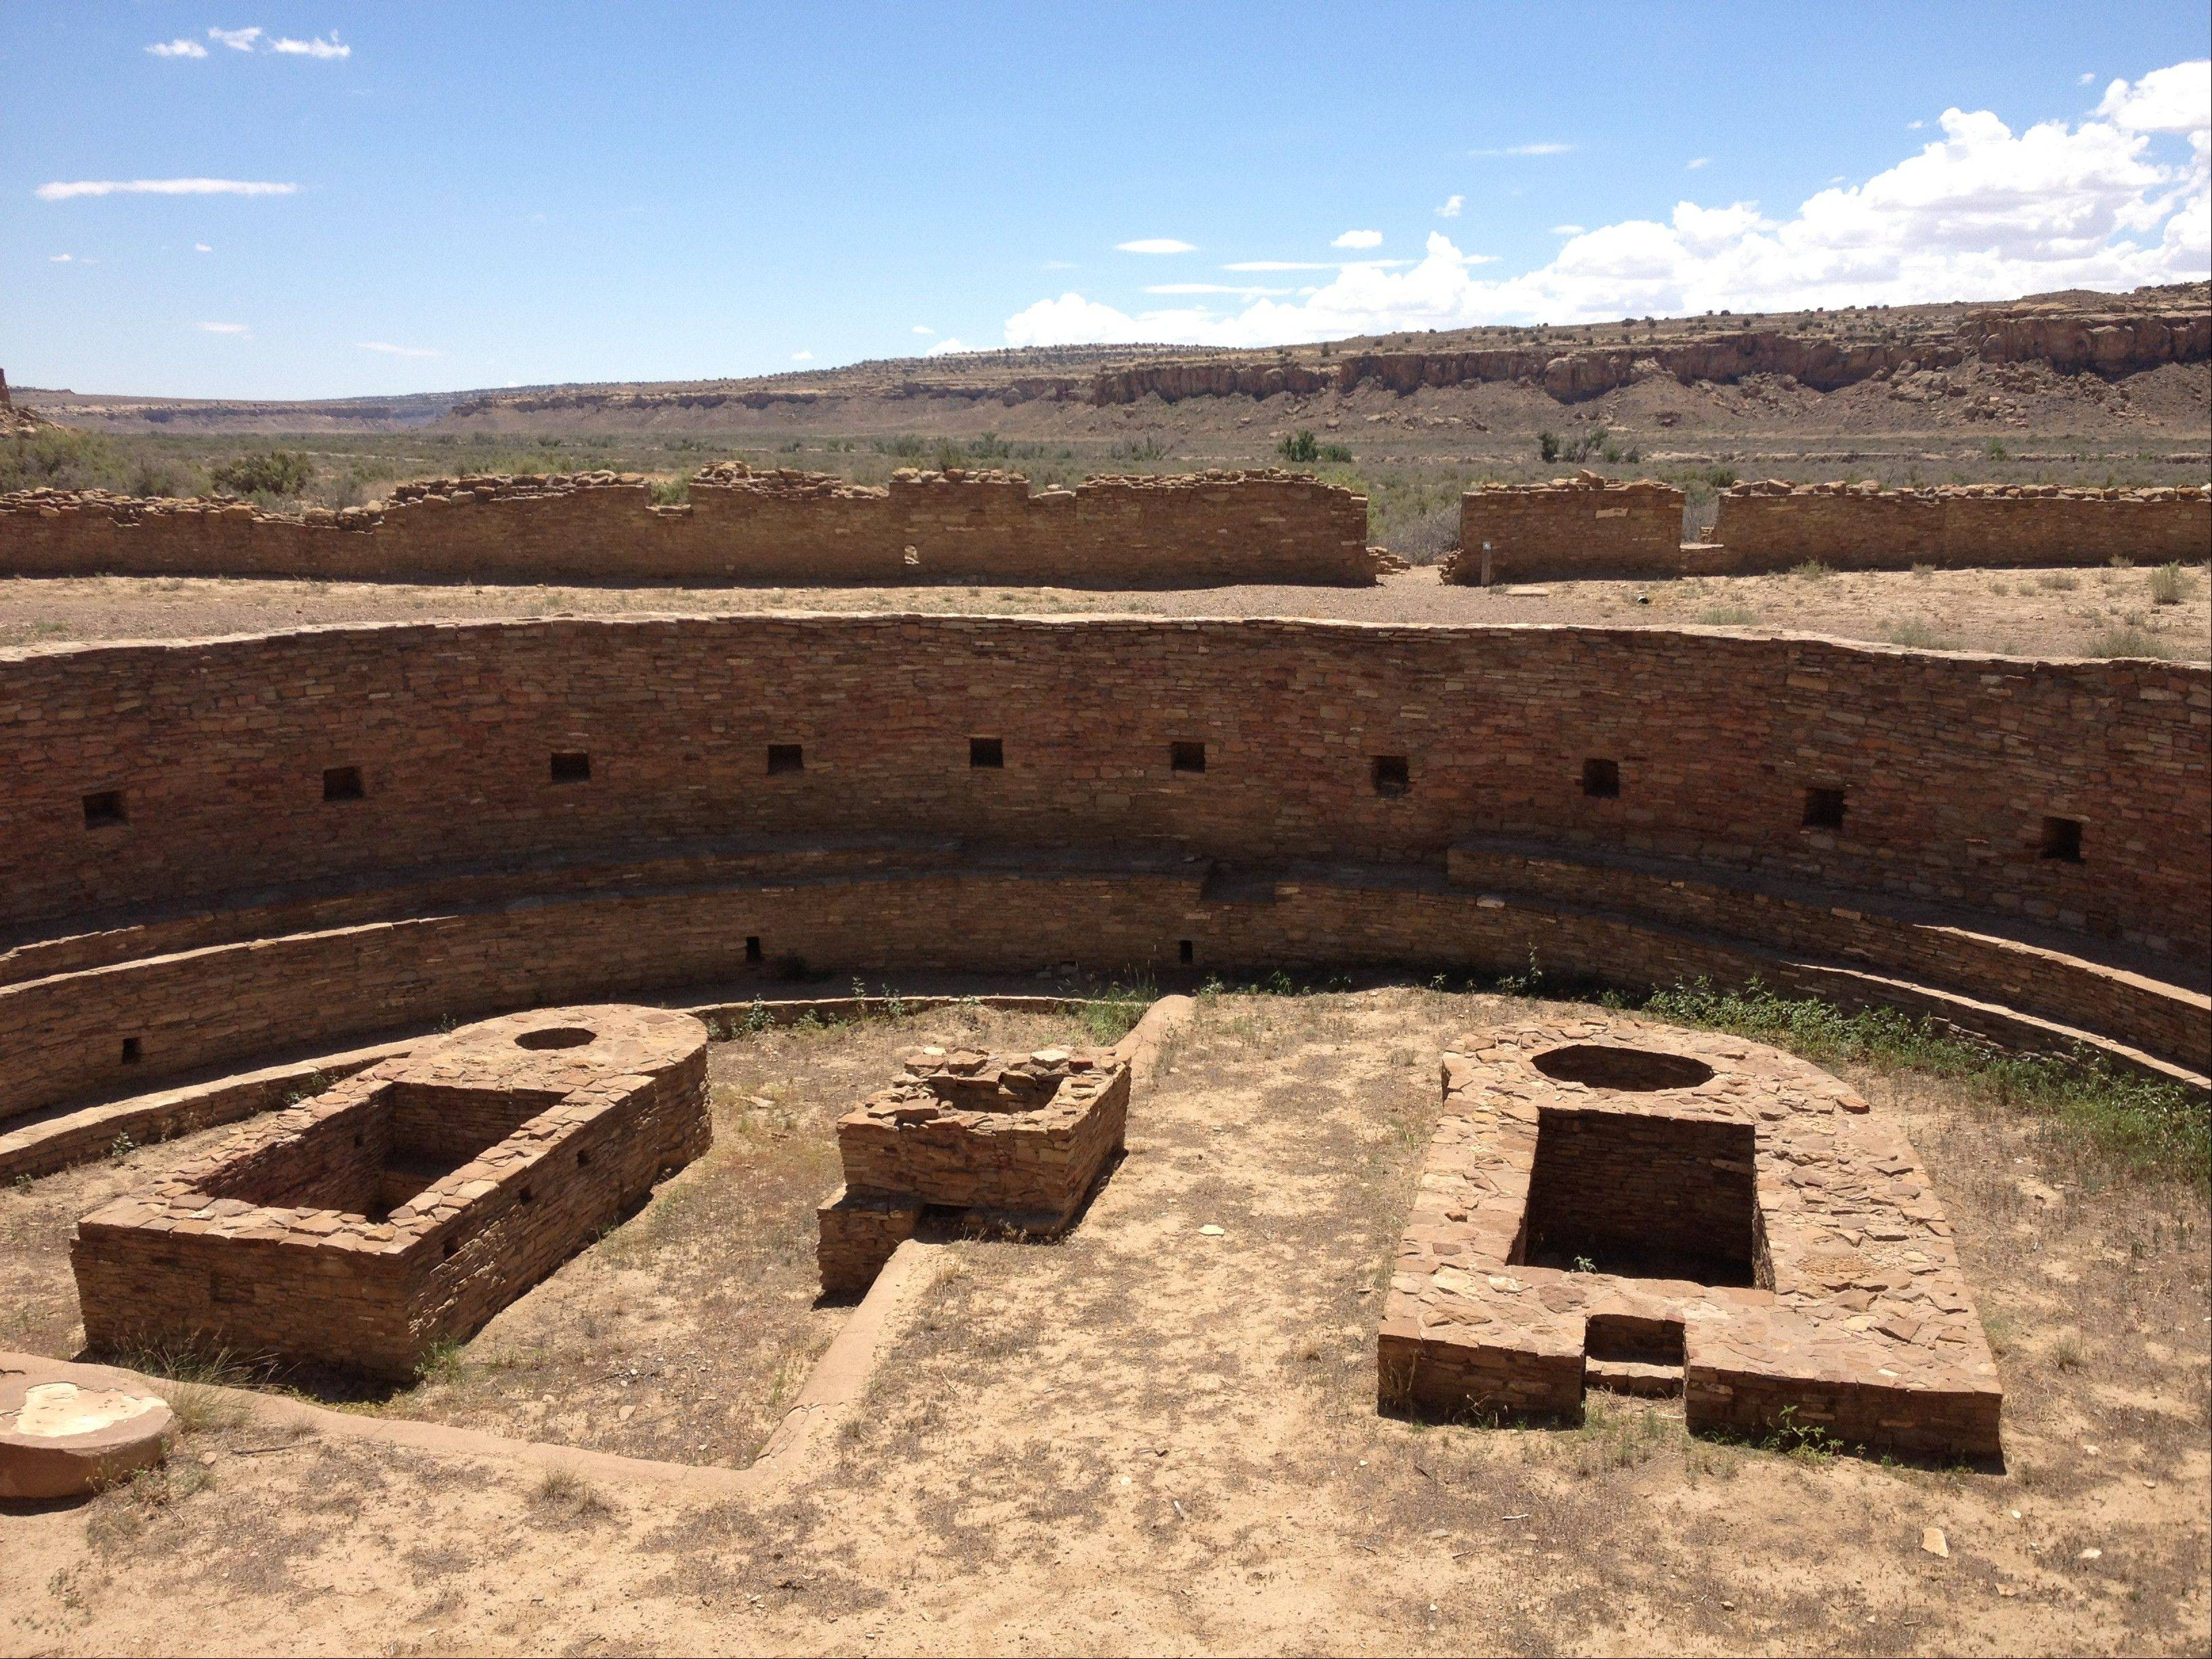 The Great Kiva and Casa Rinconada in Chaco Canyon.